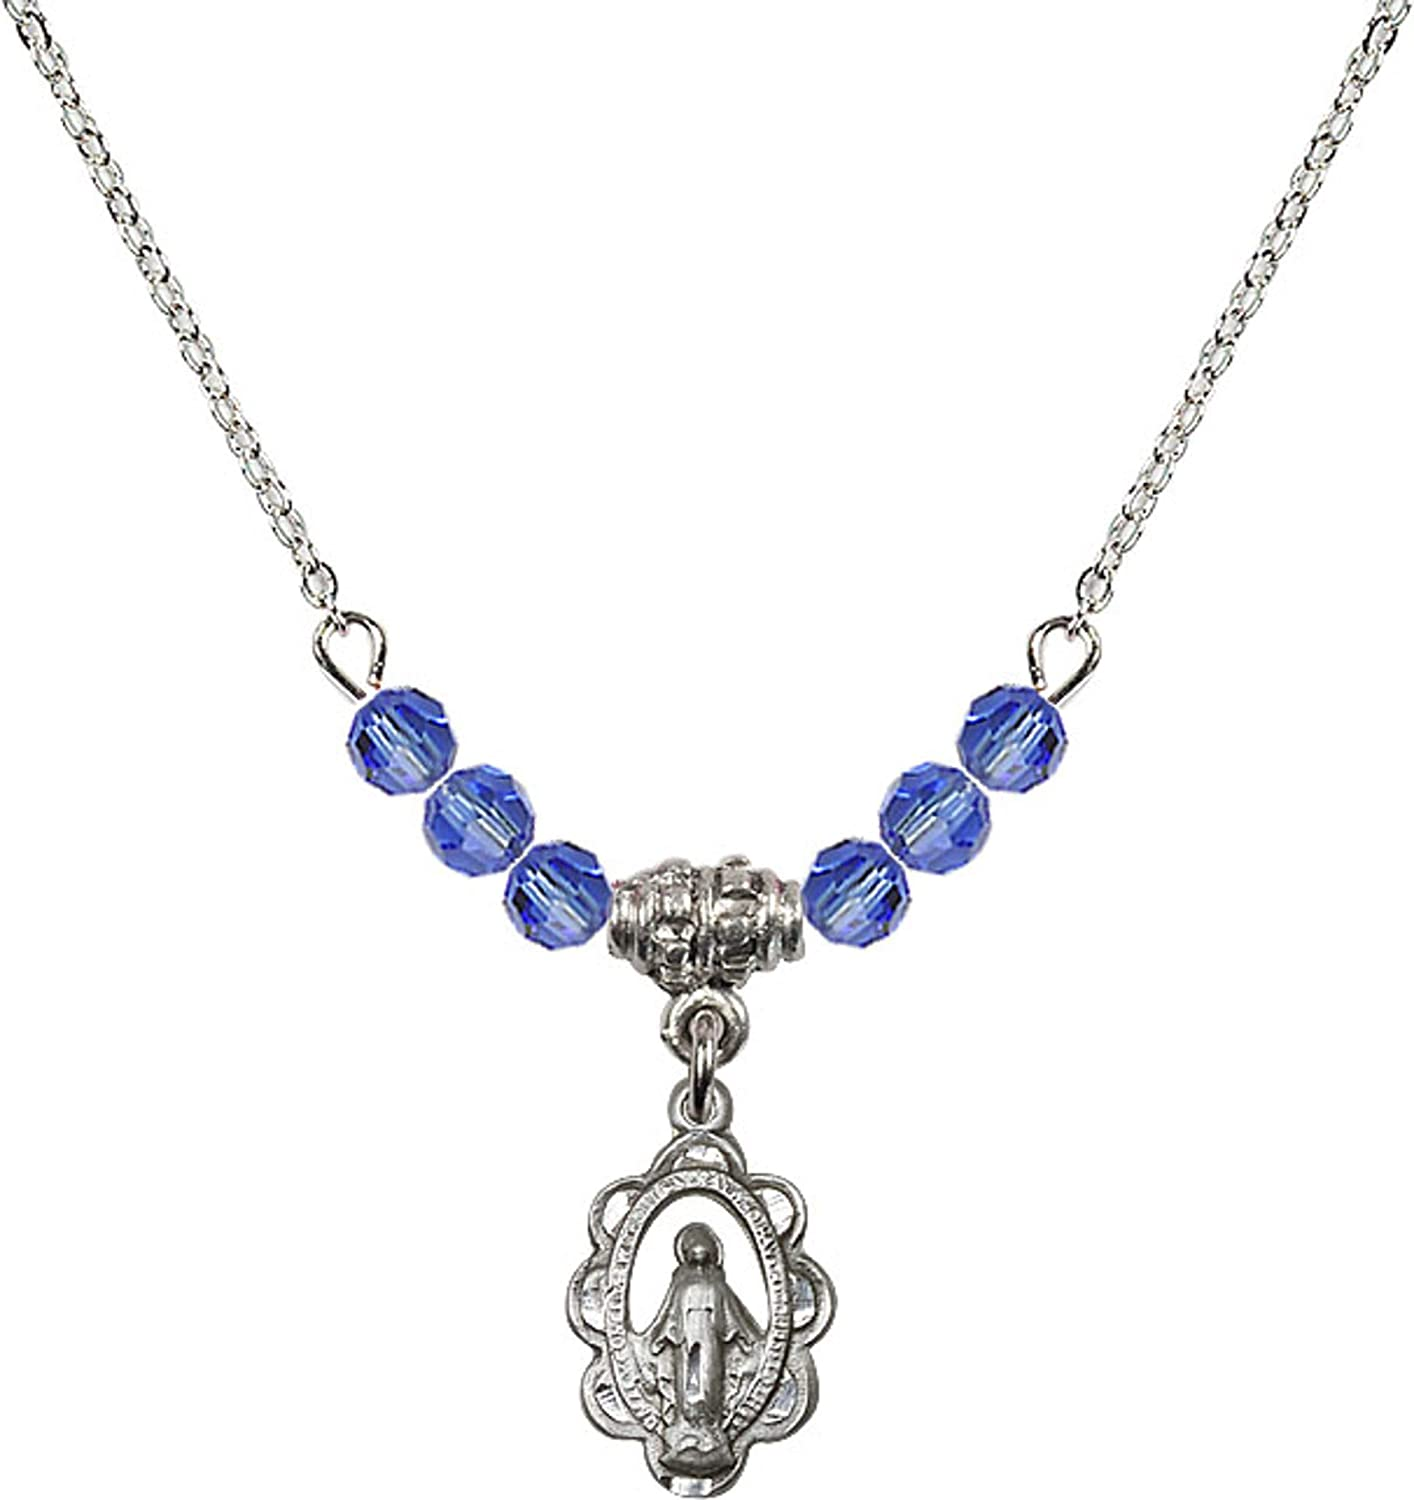 Bonyak Jewelry 18 Inch Rhodium Plated Necklace w// 4mm Blue September Birth Month Stone Beads and Miraculous Charm